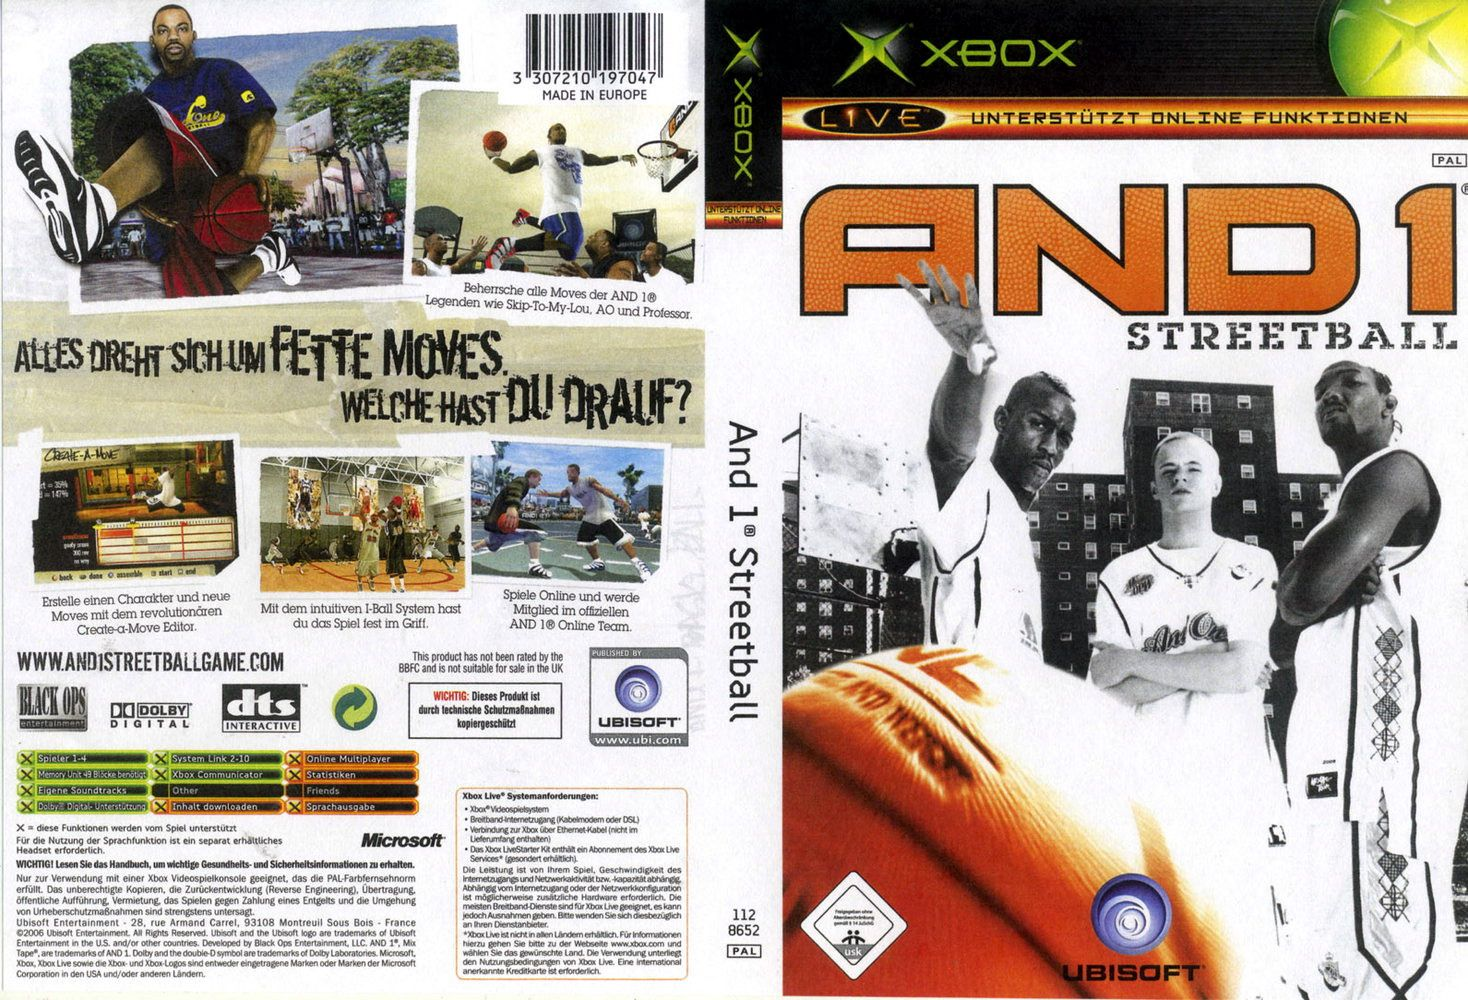 And_1_Streetball-DVD-Xbox.jpg